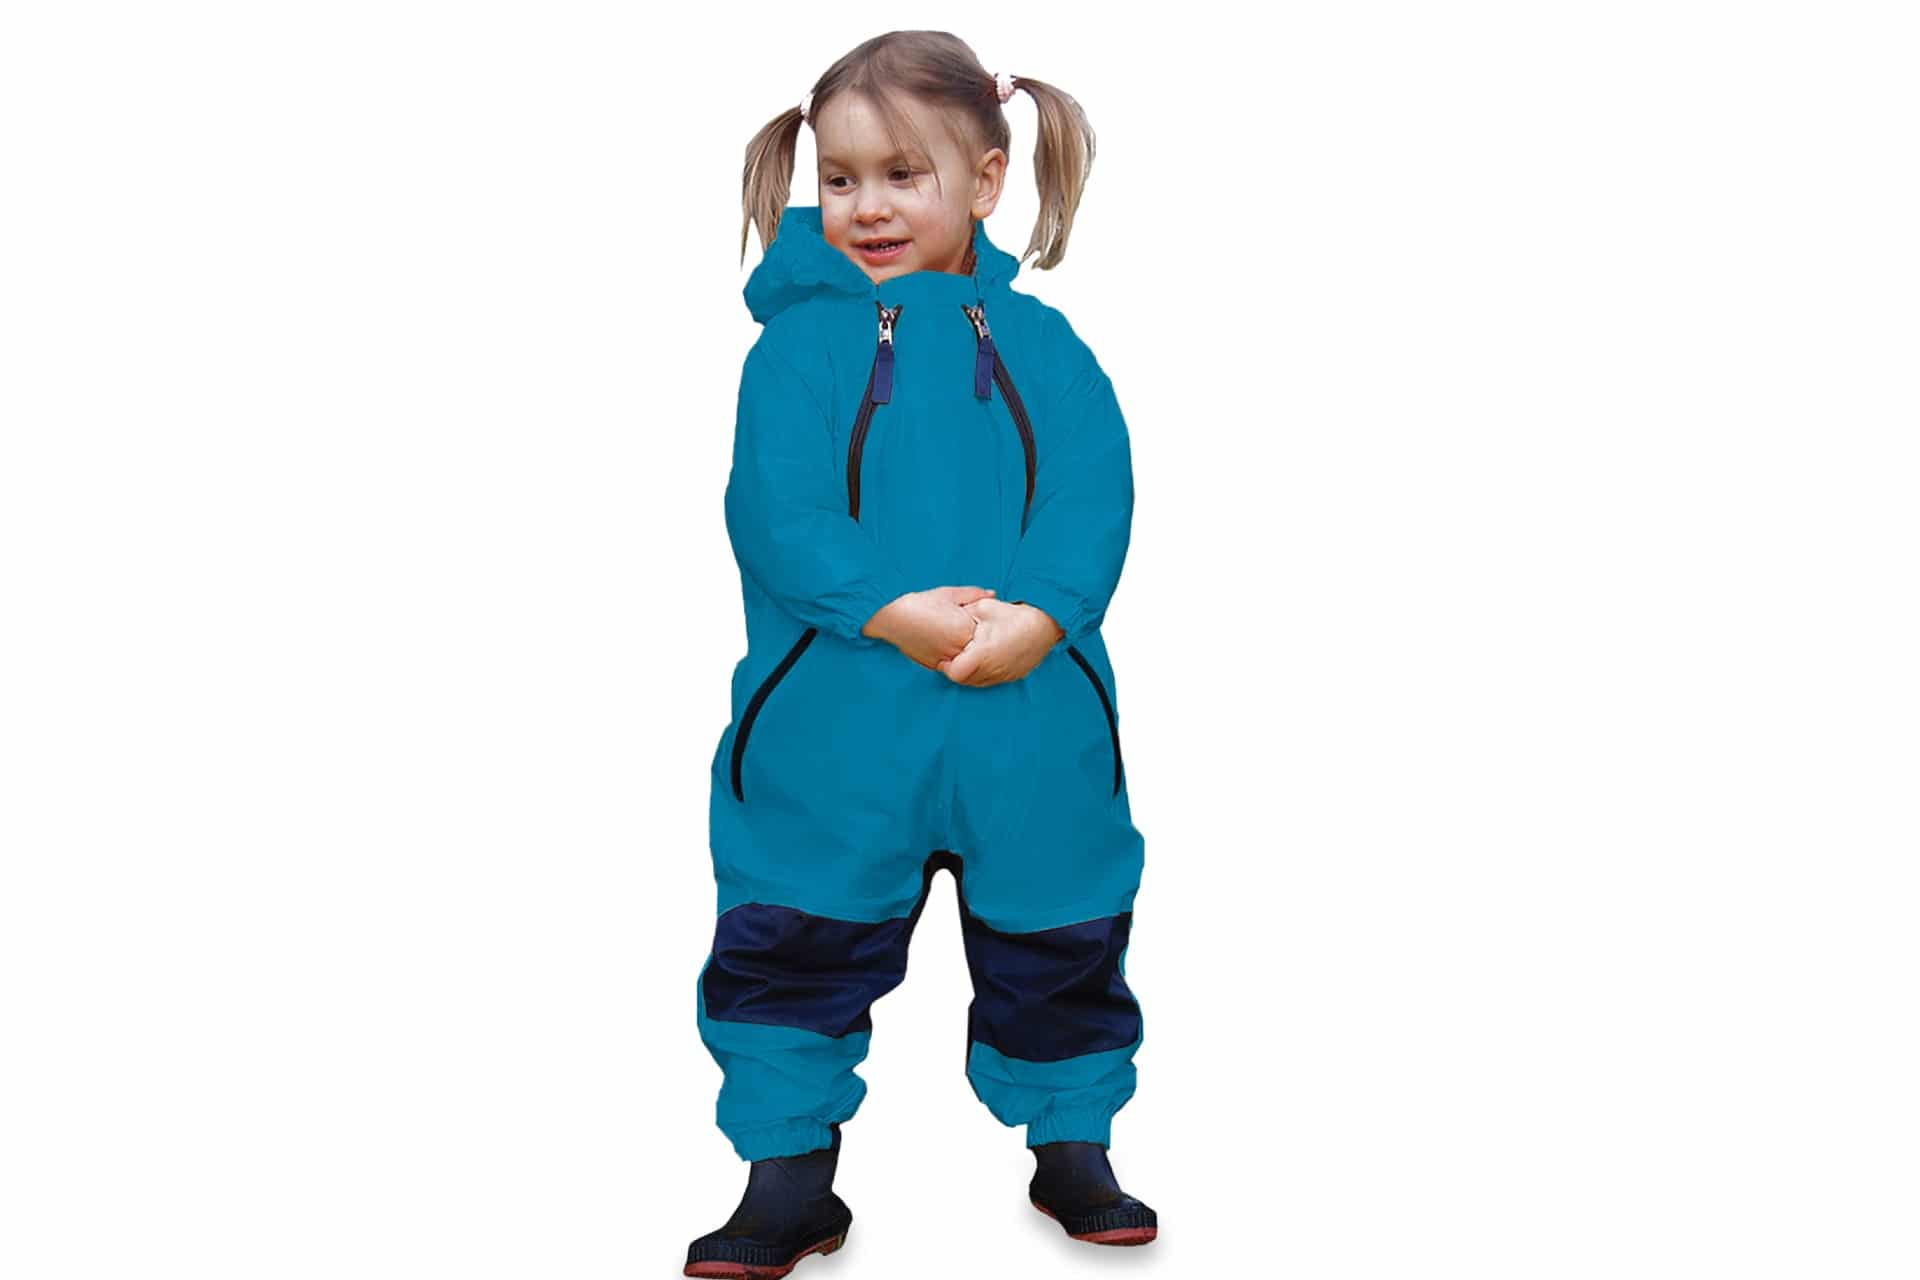 toddler in a blue one-piece rain suit